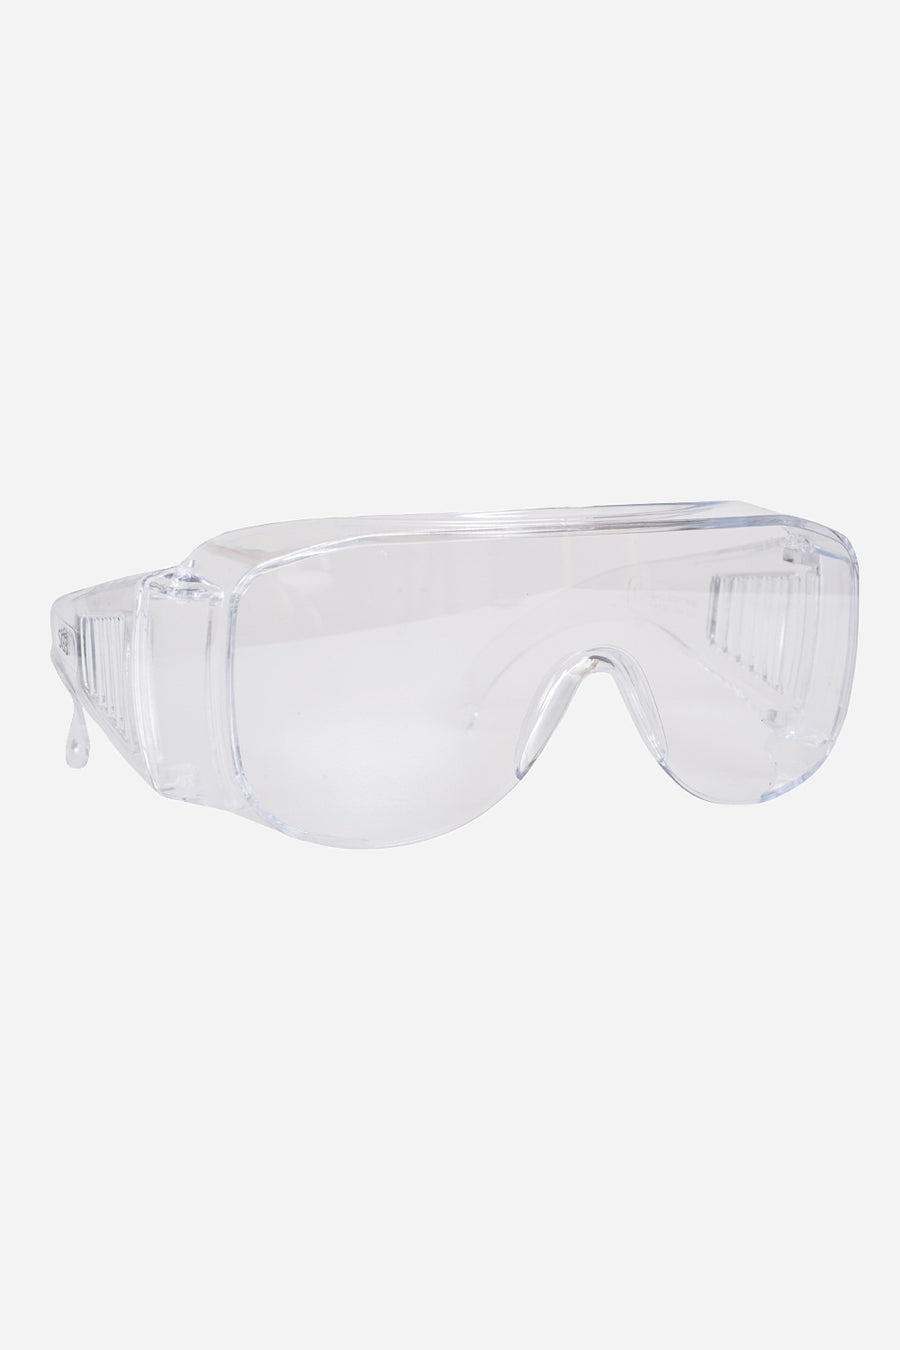 Over Wrap Safety Glasses 2019